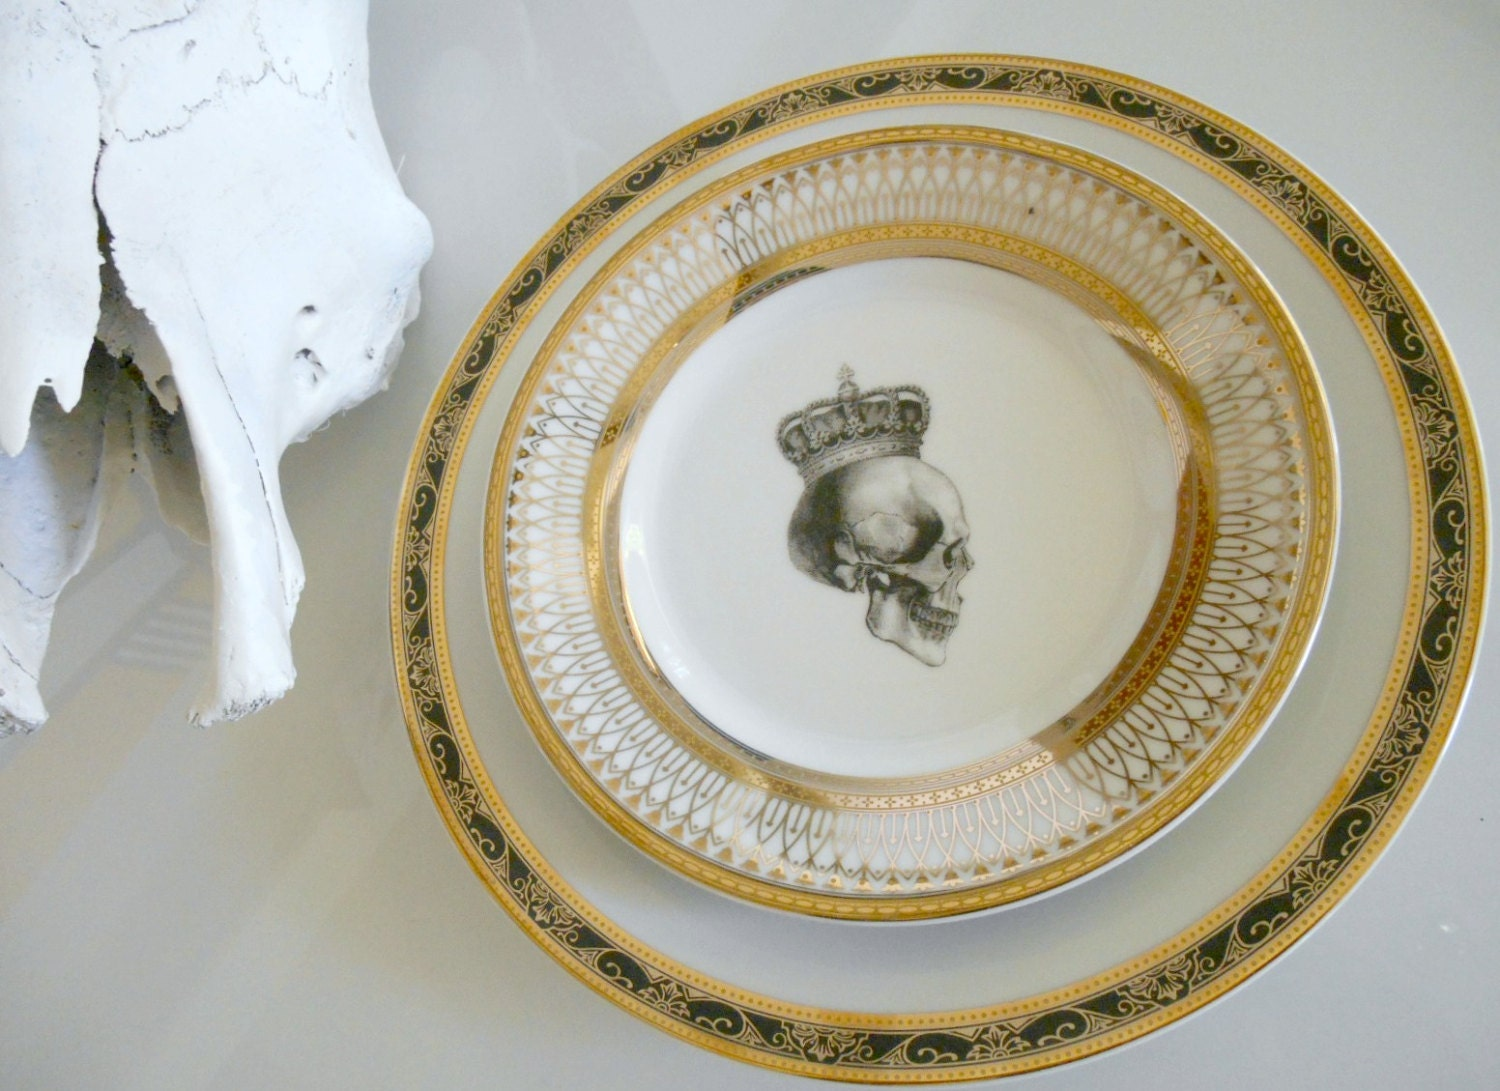 Custom Order for Mary - Four Black and Gold Dinner Skull Dinner Plates and 4 Fancy Gold Skull Salad Plates & Custom Order for Mary - Four Black and Gold Dinner Skull and